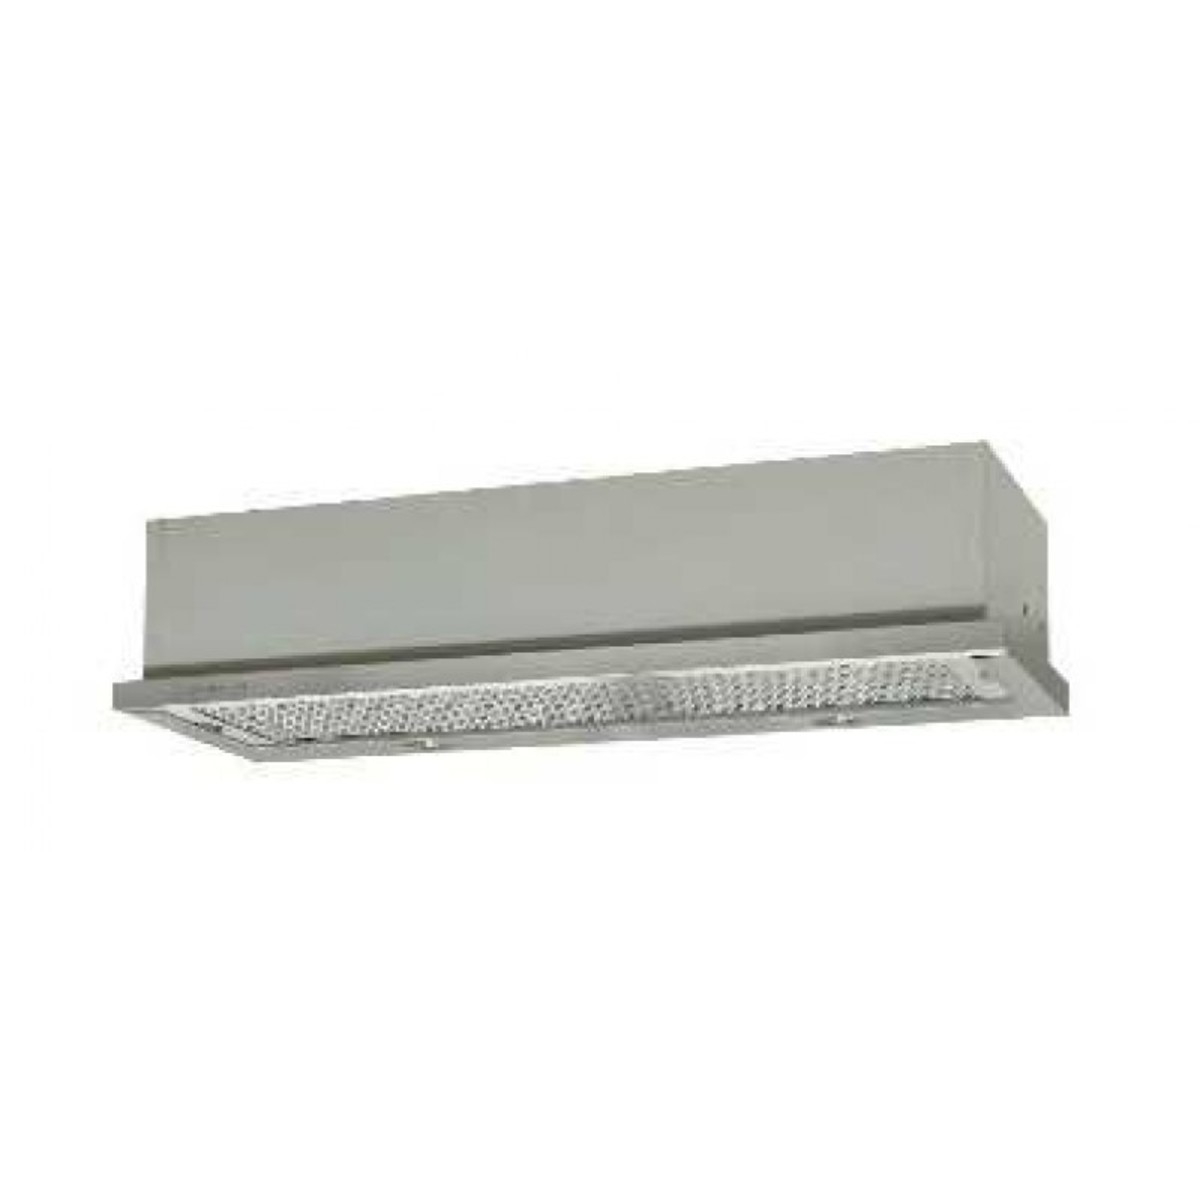 GH1109S TELESCOPIC HOOD Hong Kong Warranty Genuine Products